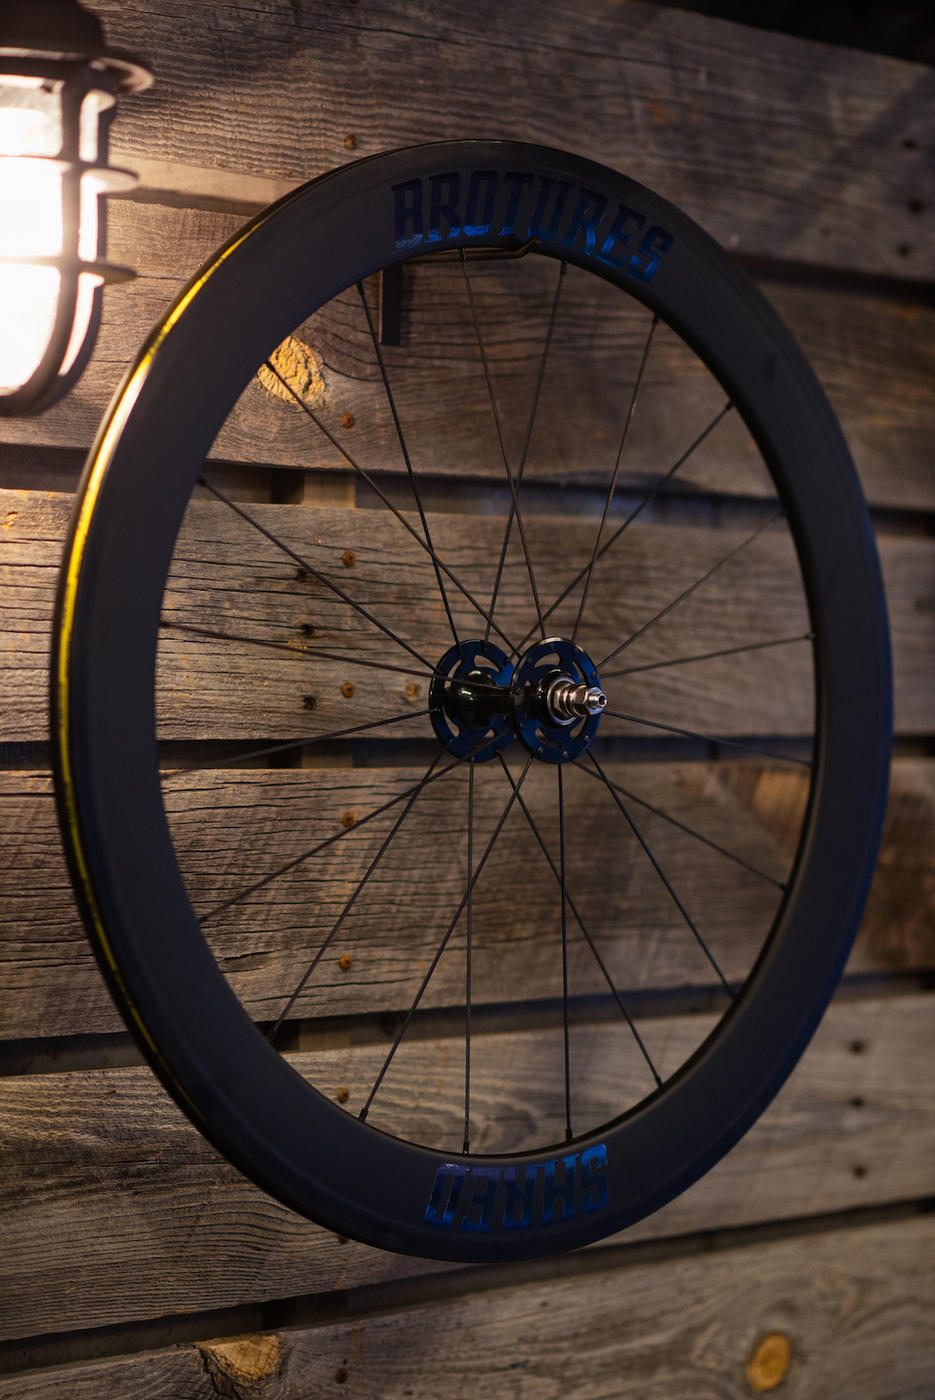 BROTURES KICHIJOJI CARBON DEEP WHEEL T3 PRO T4 SHRED88 60